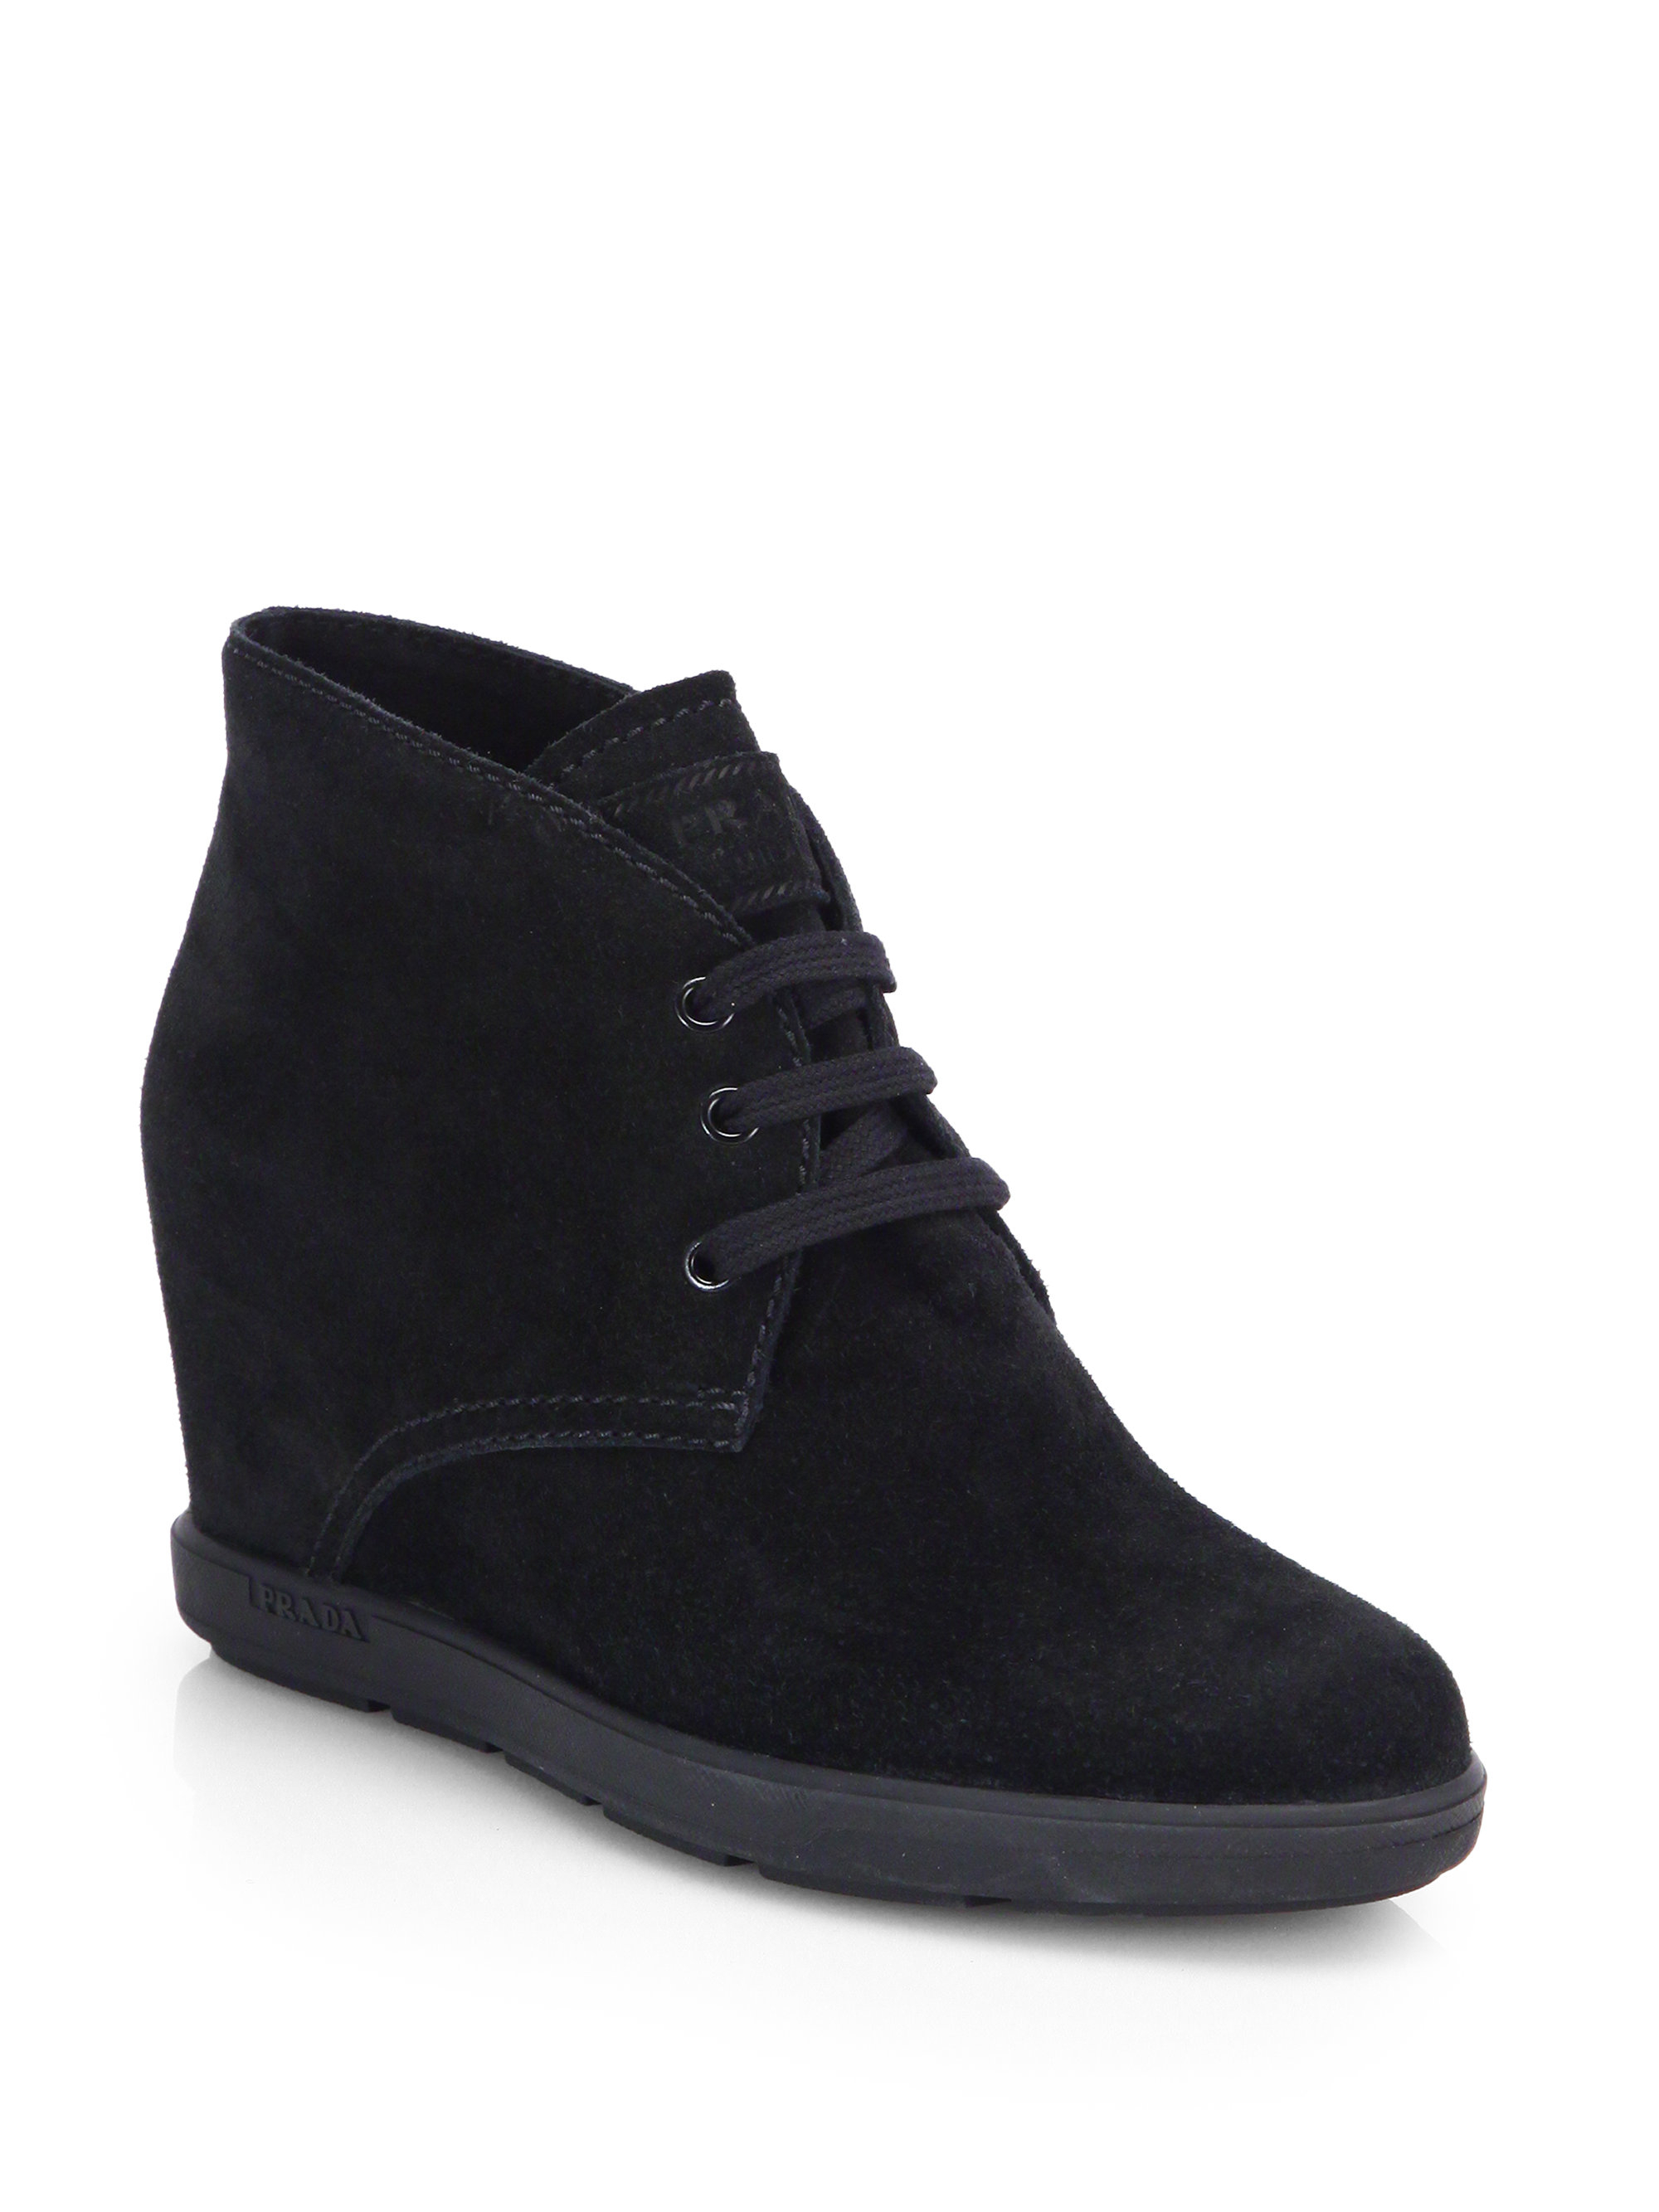 prada suede wedge ankle boots in black lyst